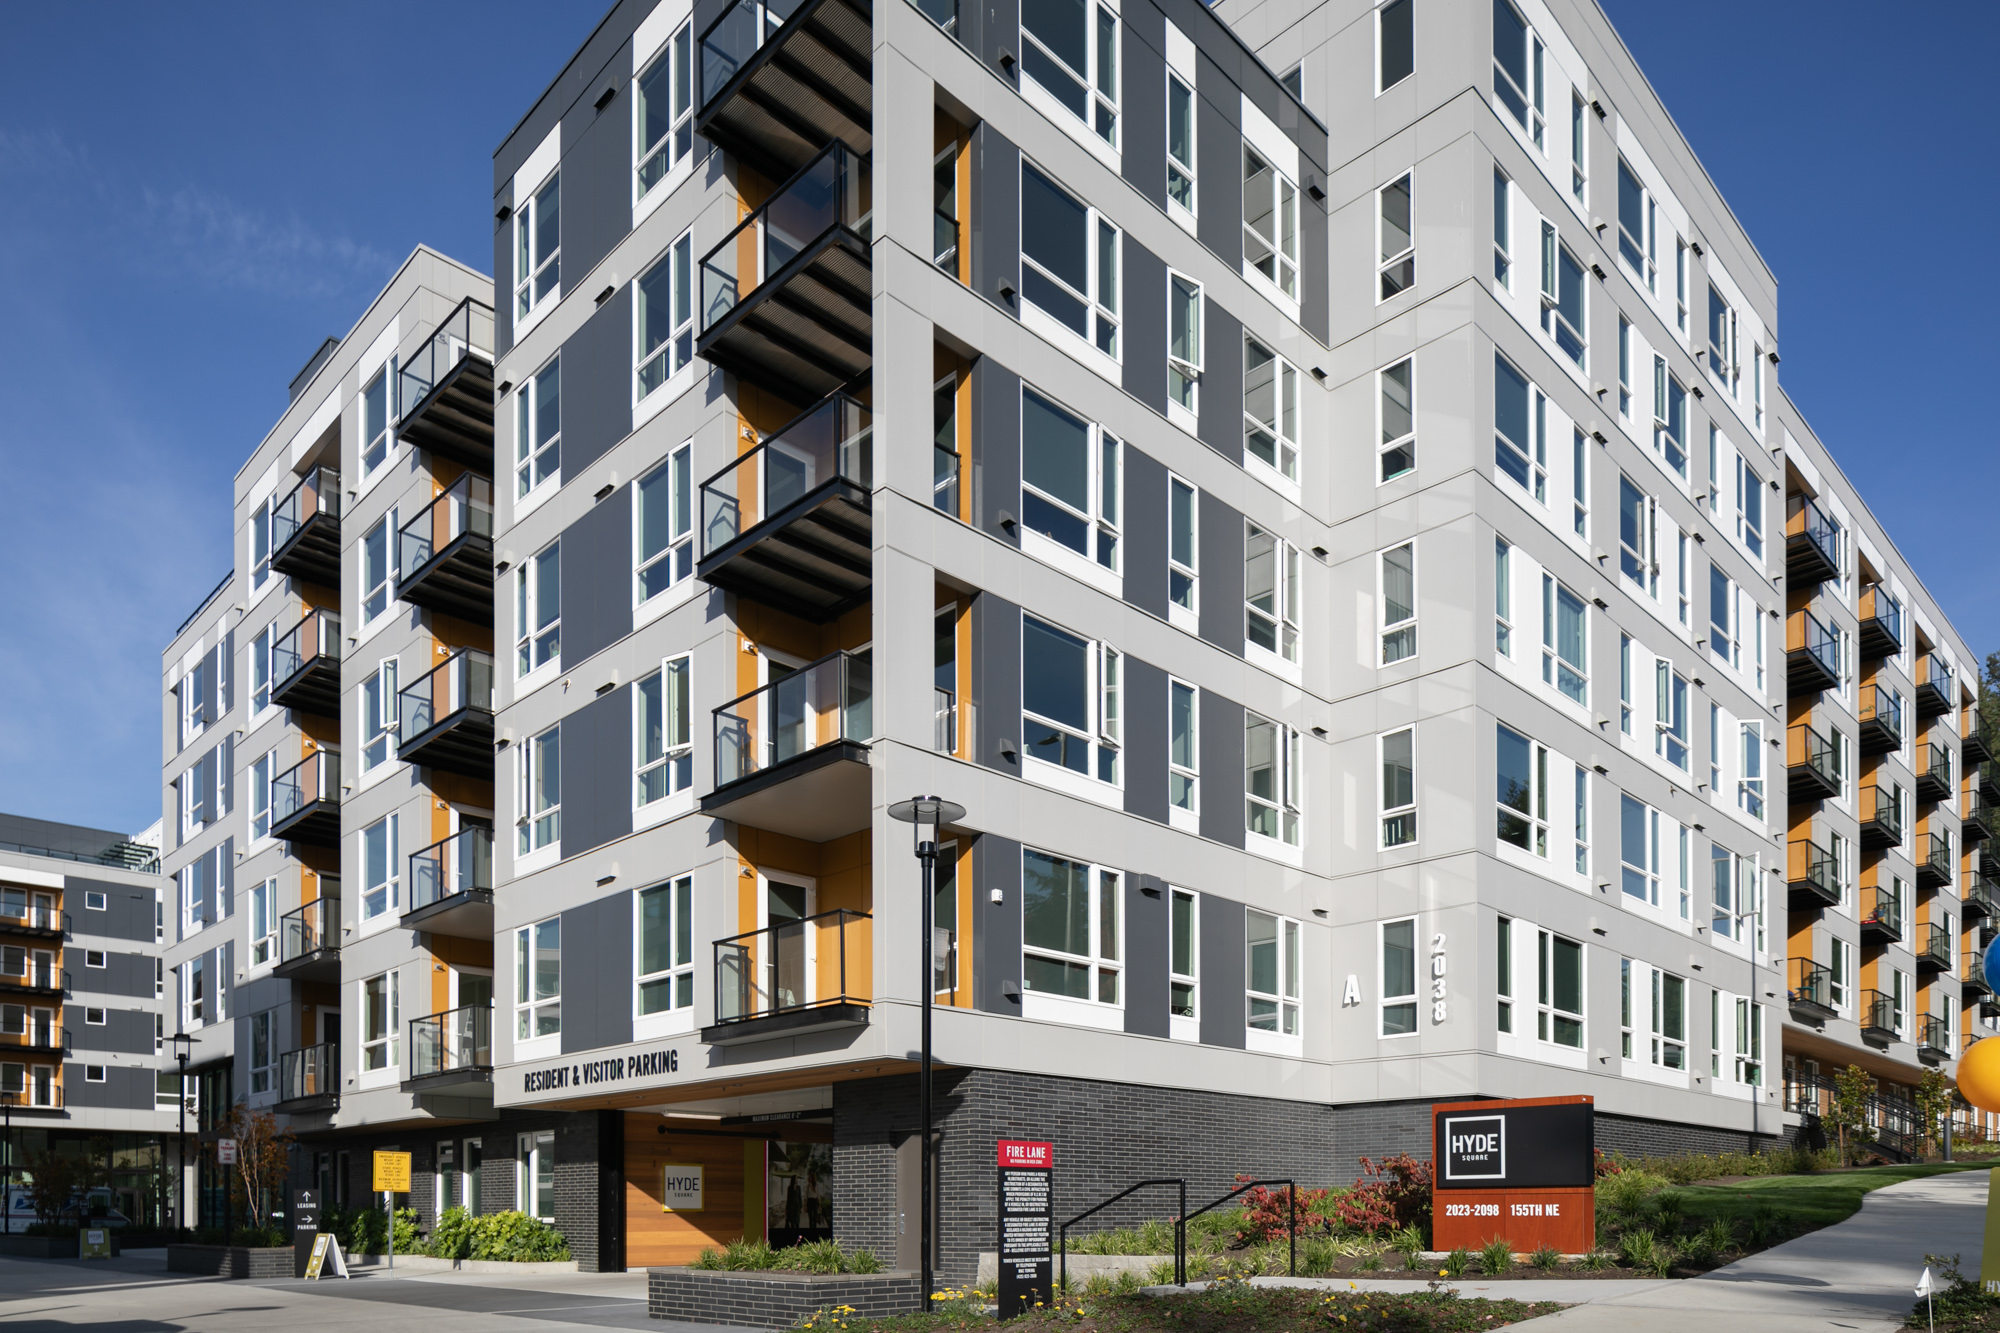 Exterior of modern 6-story apartment building